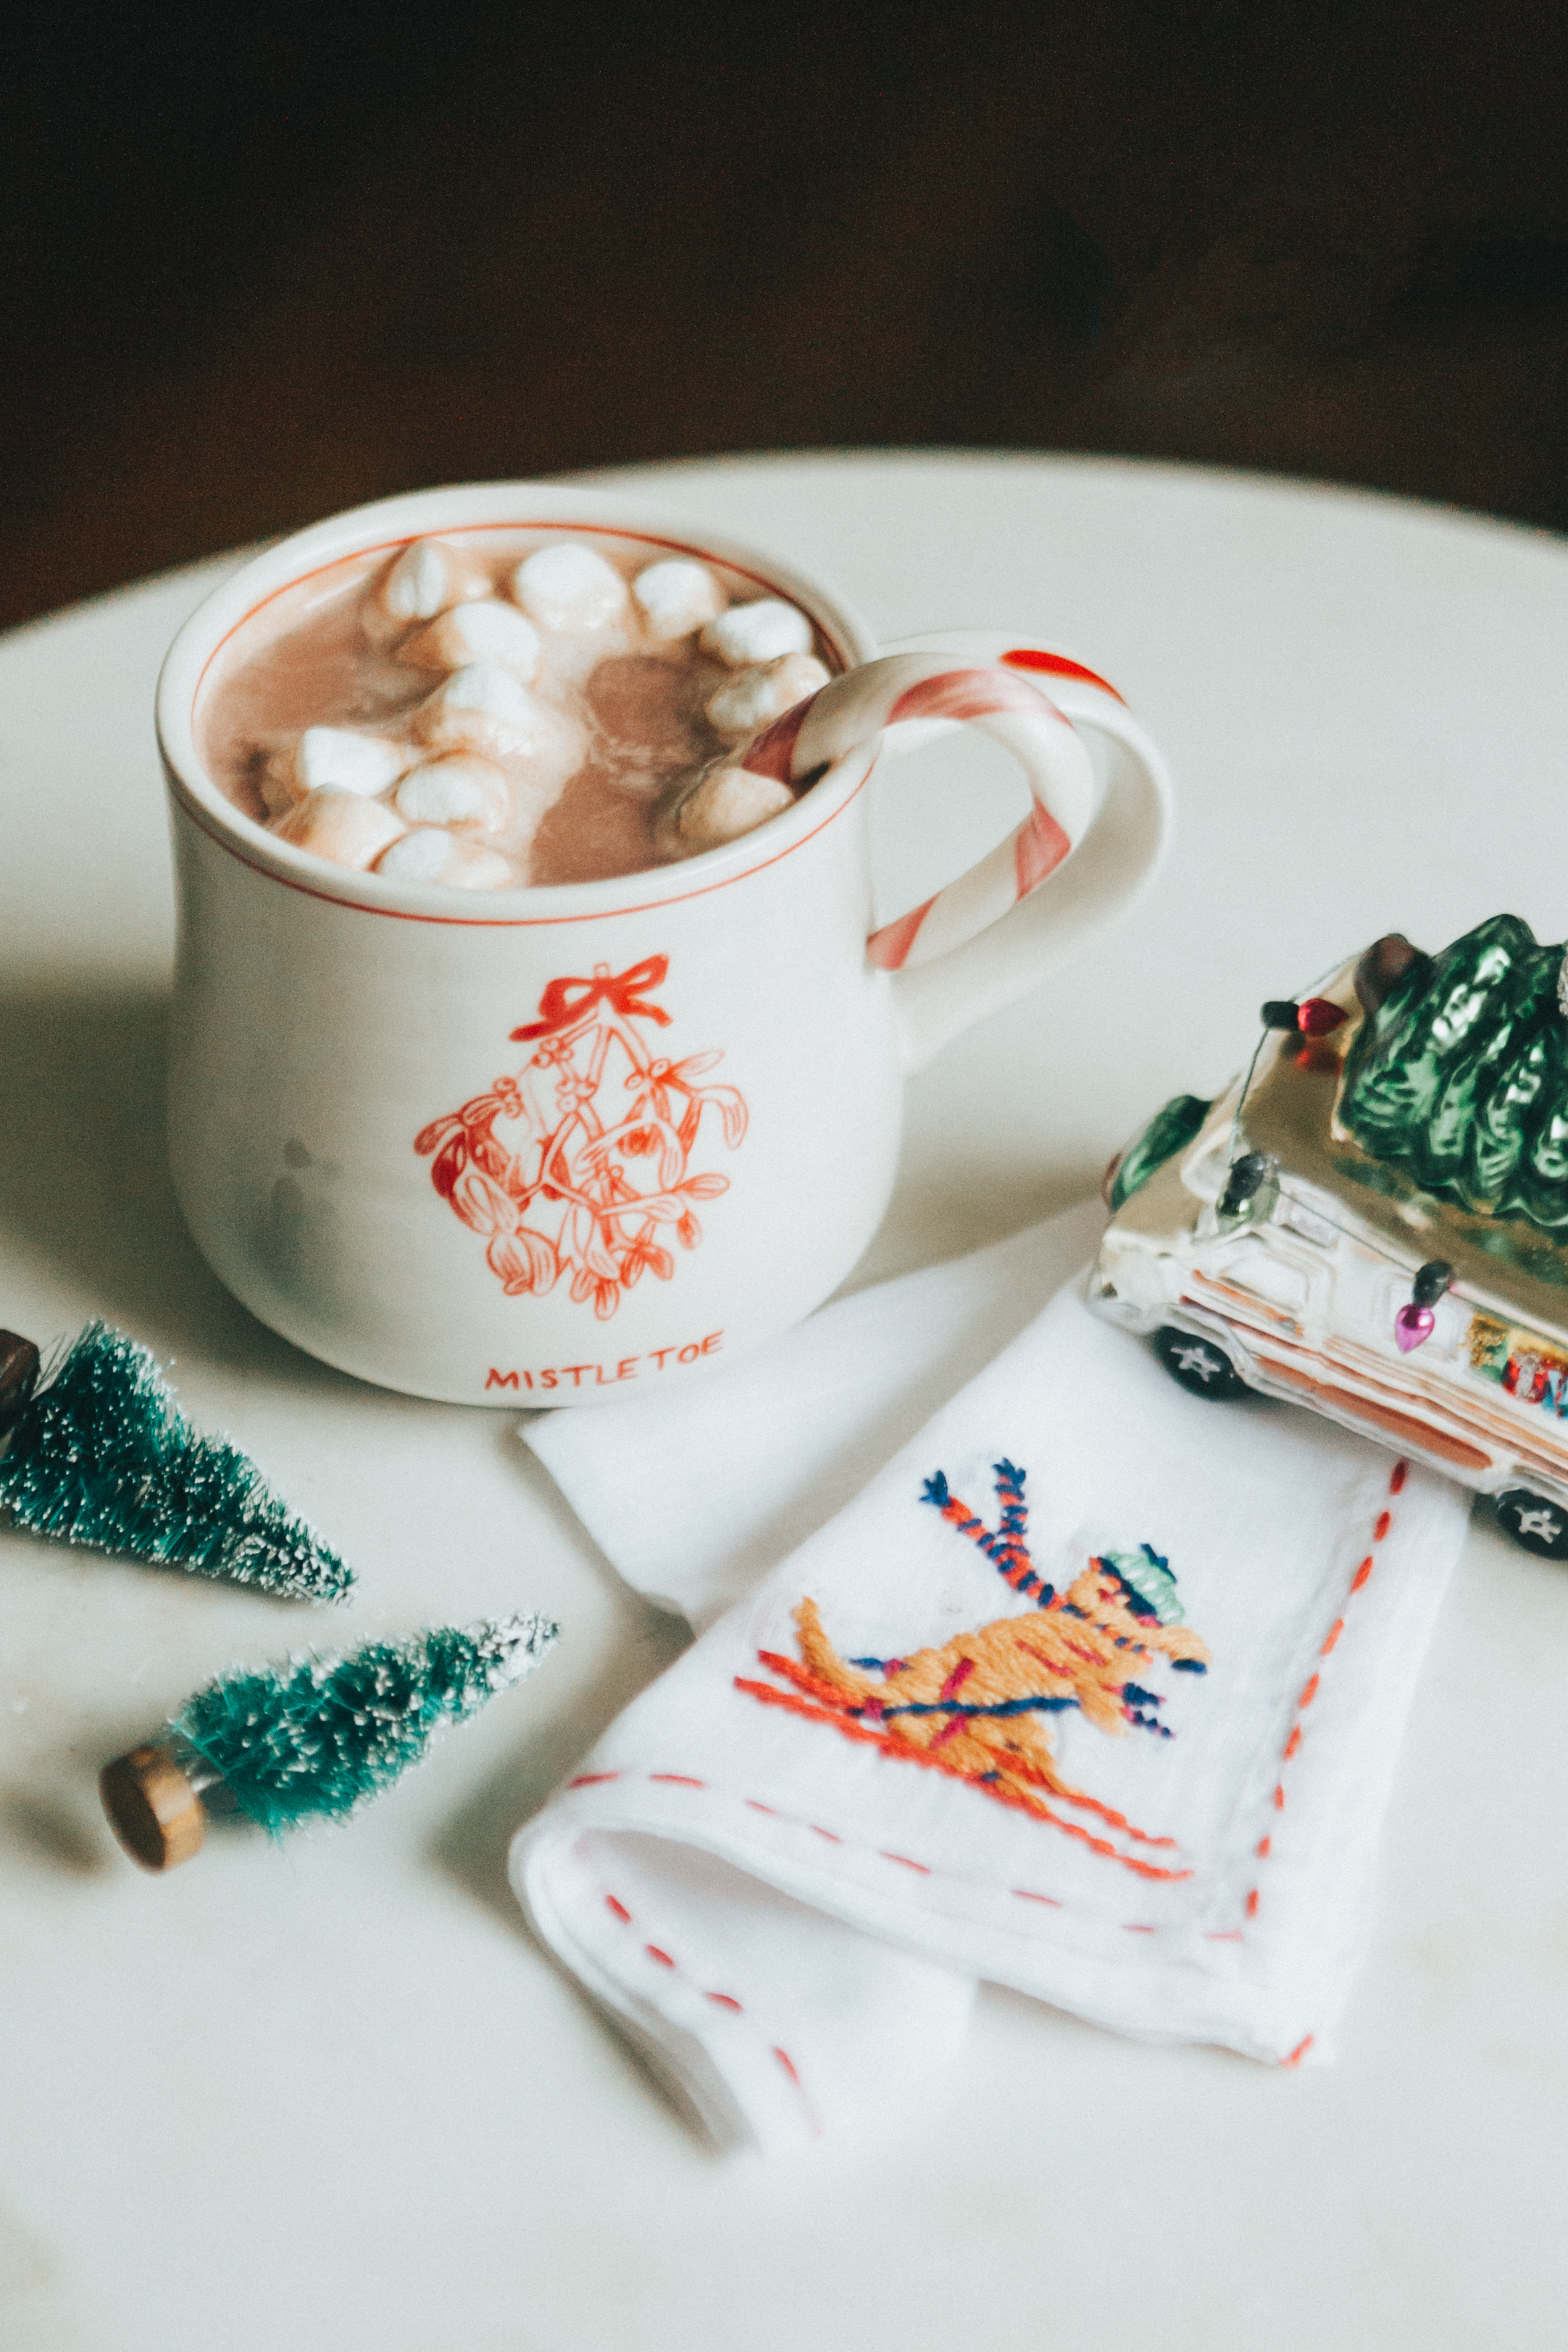 We will be making a hot cocoa station for Christmas Eve.